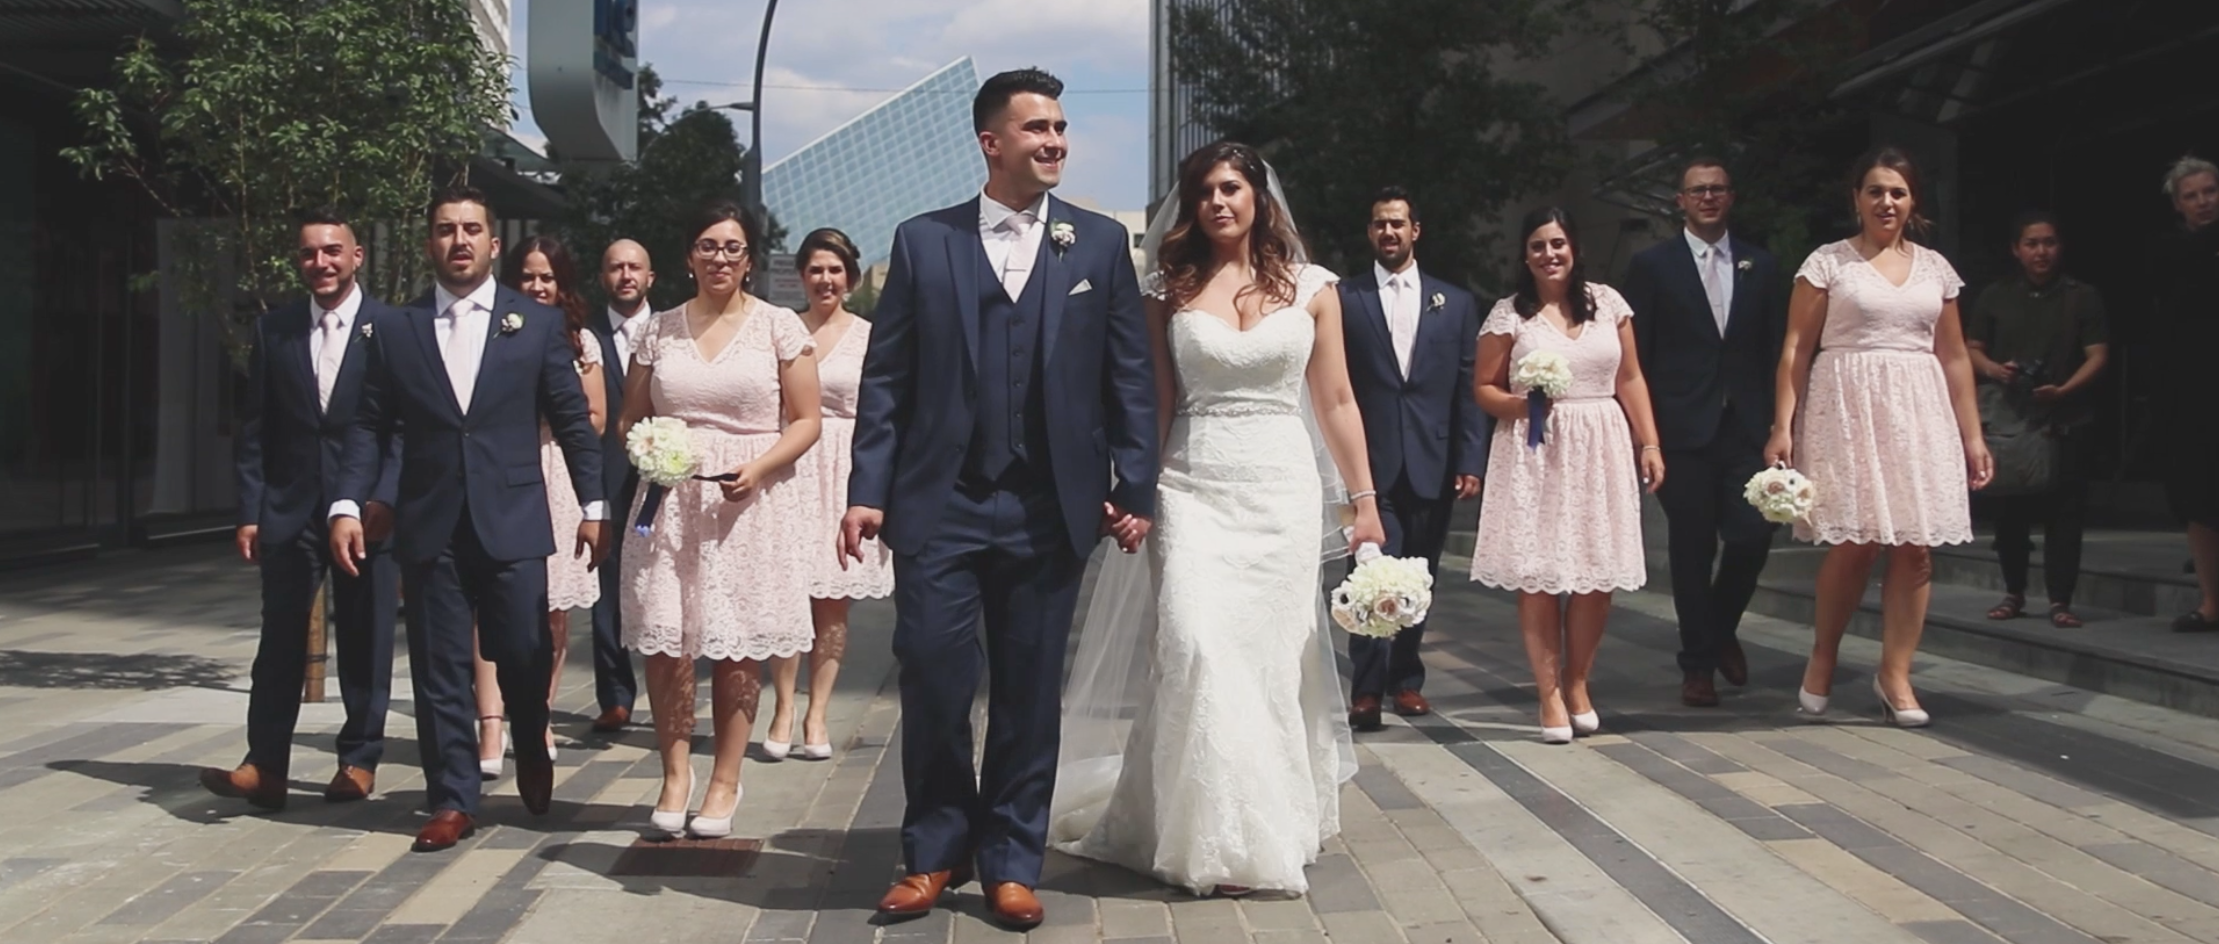 Edmonton Wedding Videography